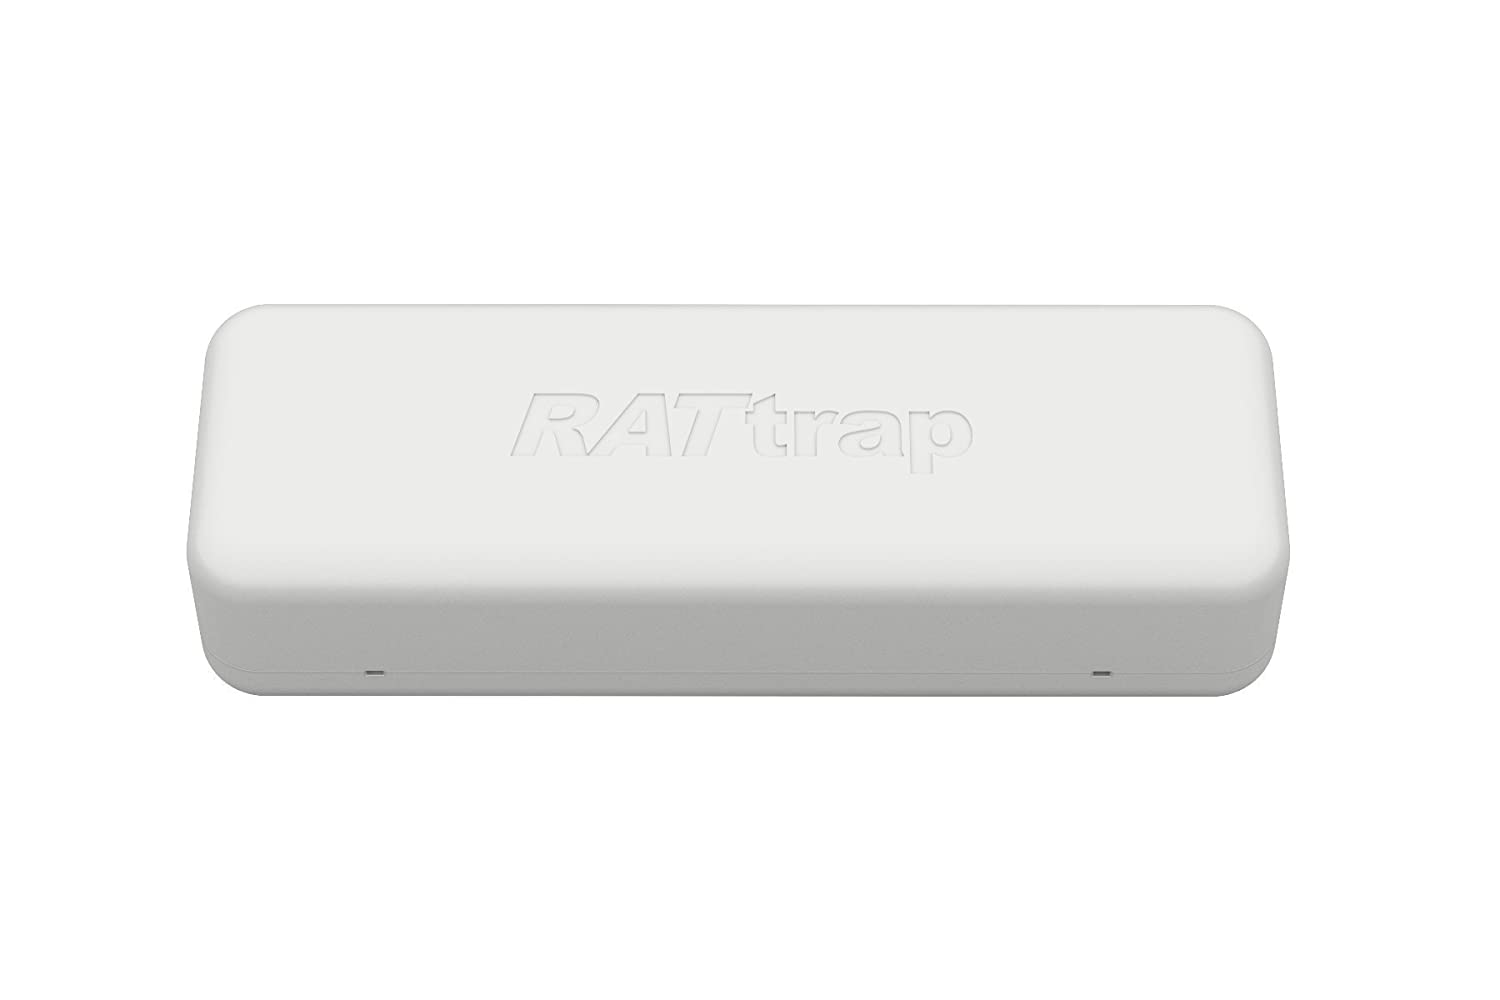 RATtrap - Smart Internet Security Firewall - Protects all your Internet  connected devices from malware and hackers